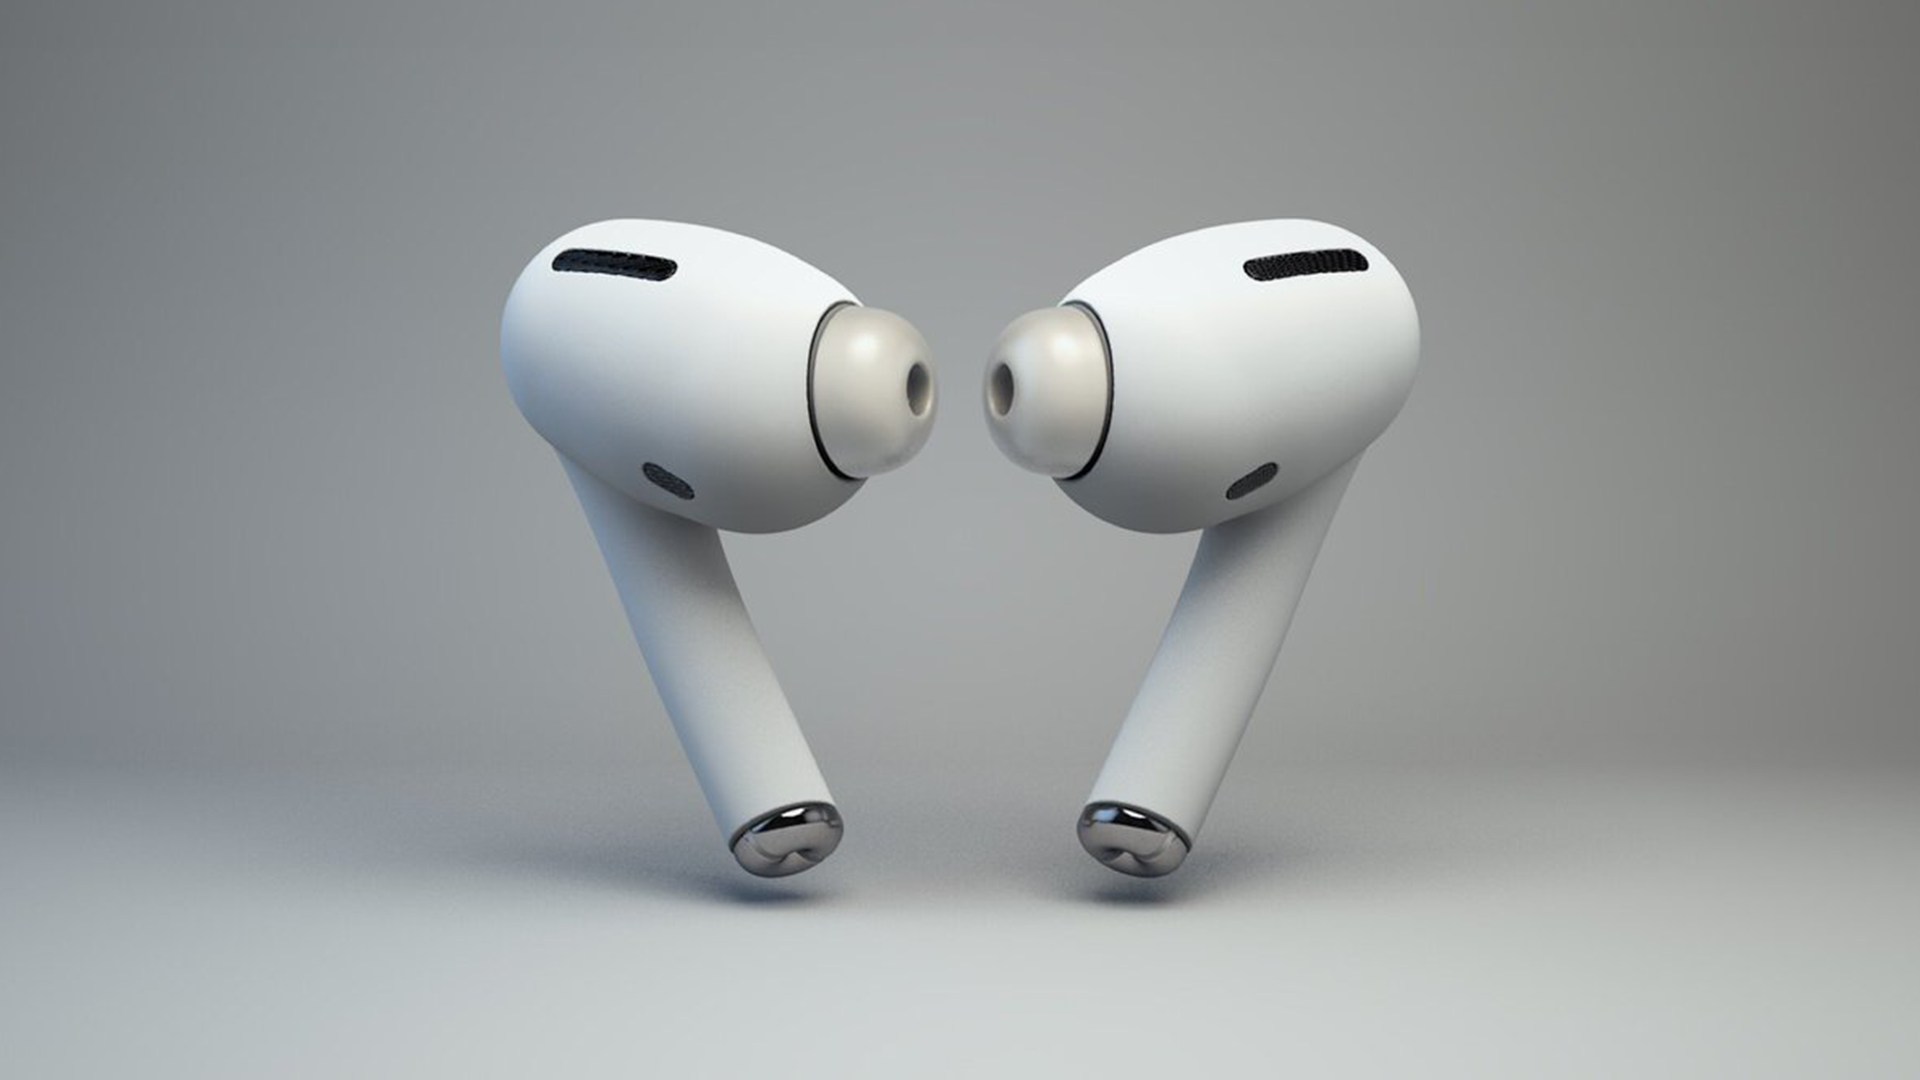 Concept Based On Latest Leaks Imagines Apple S New In Ear Airpods